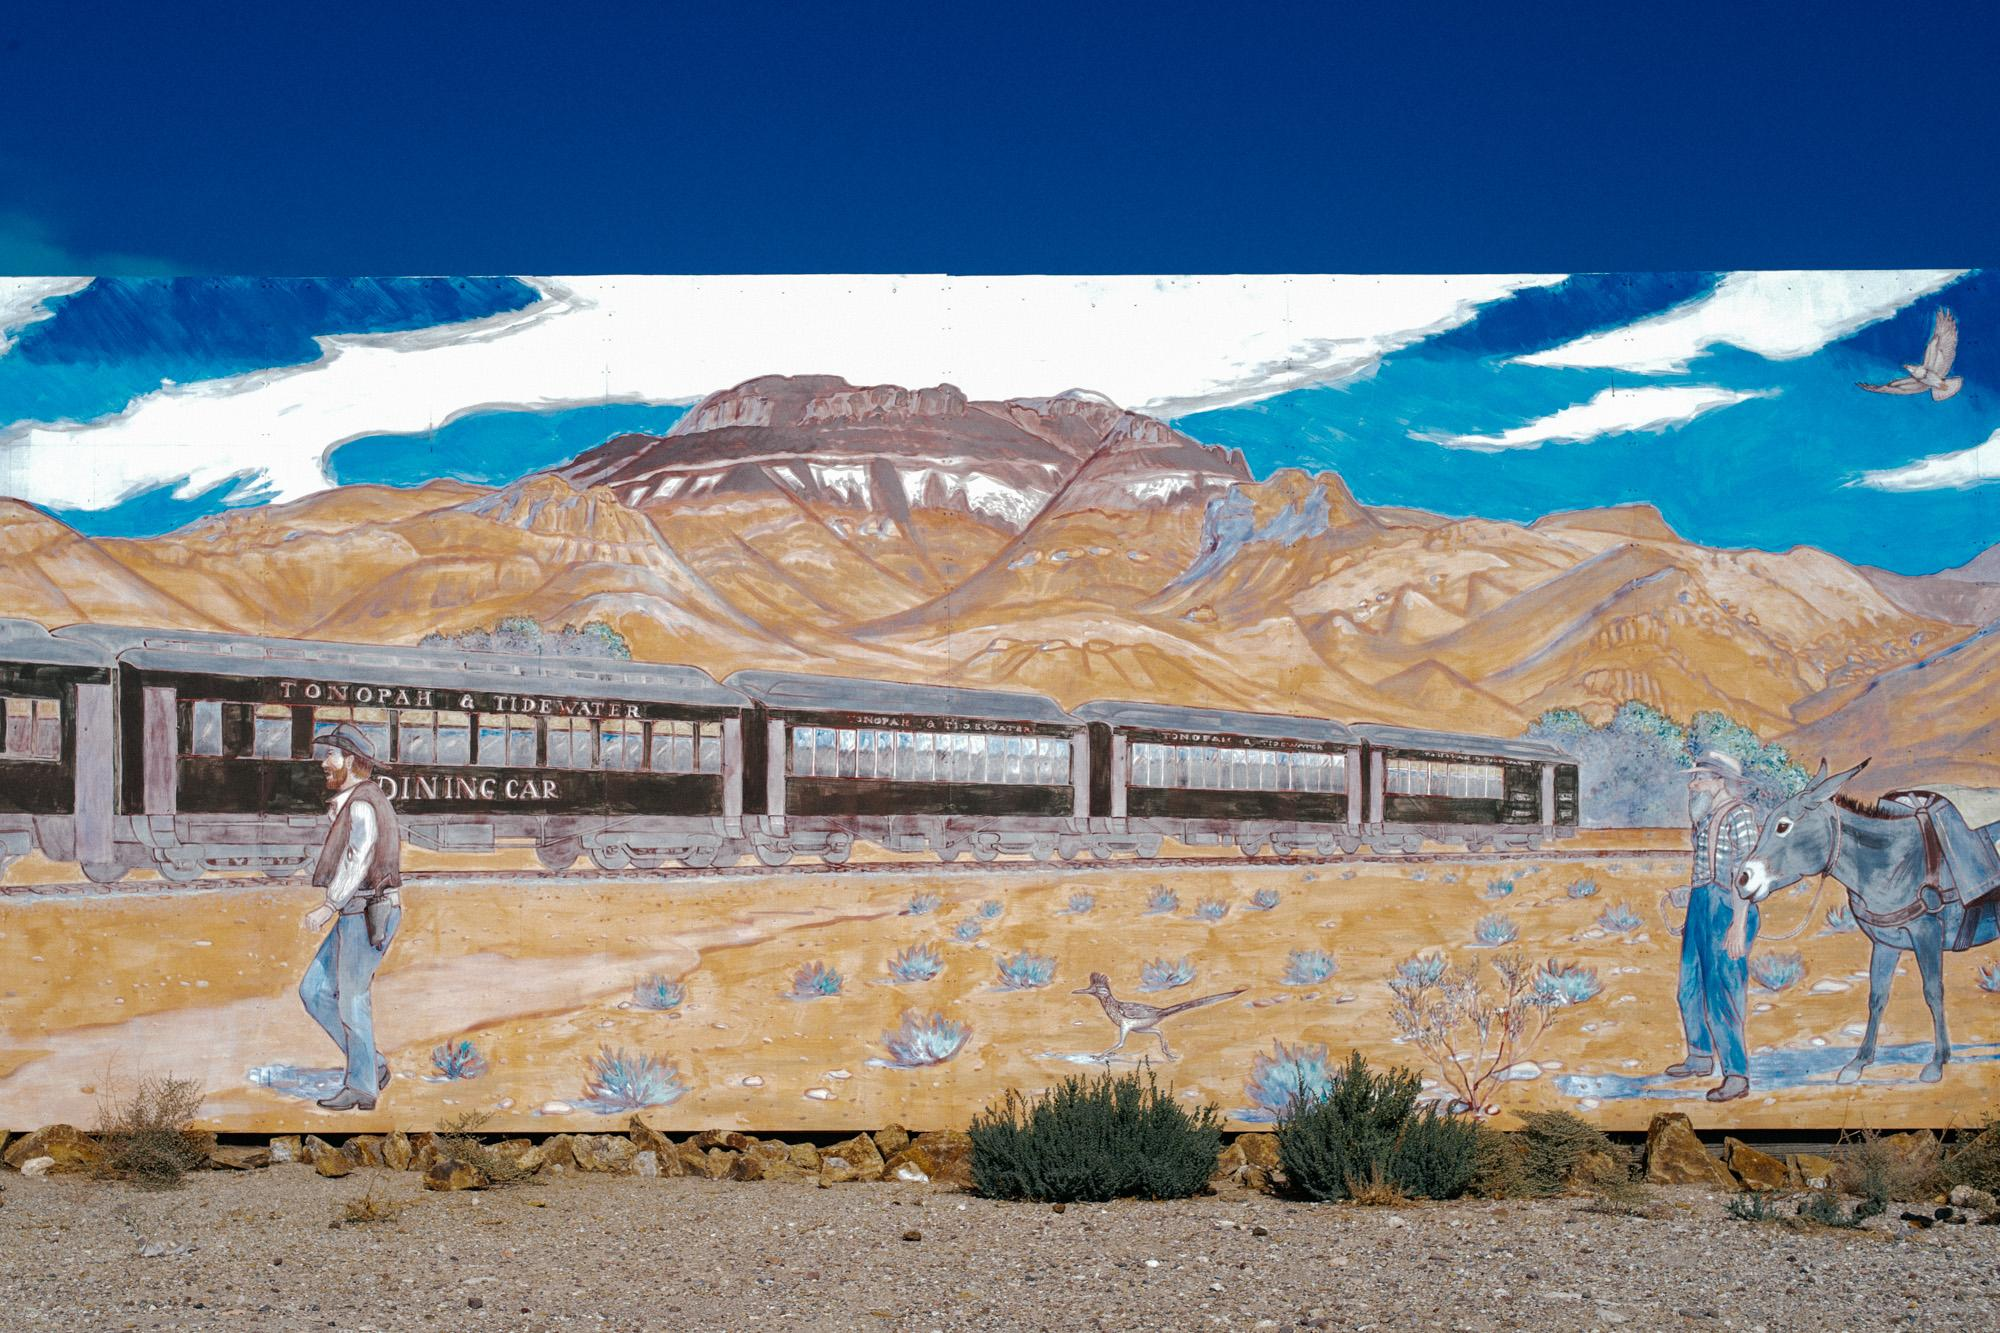 Tonopah Railway mural in Beatty